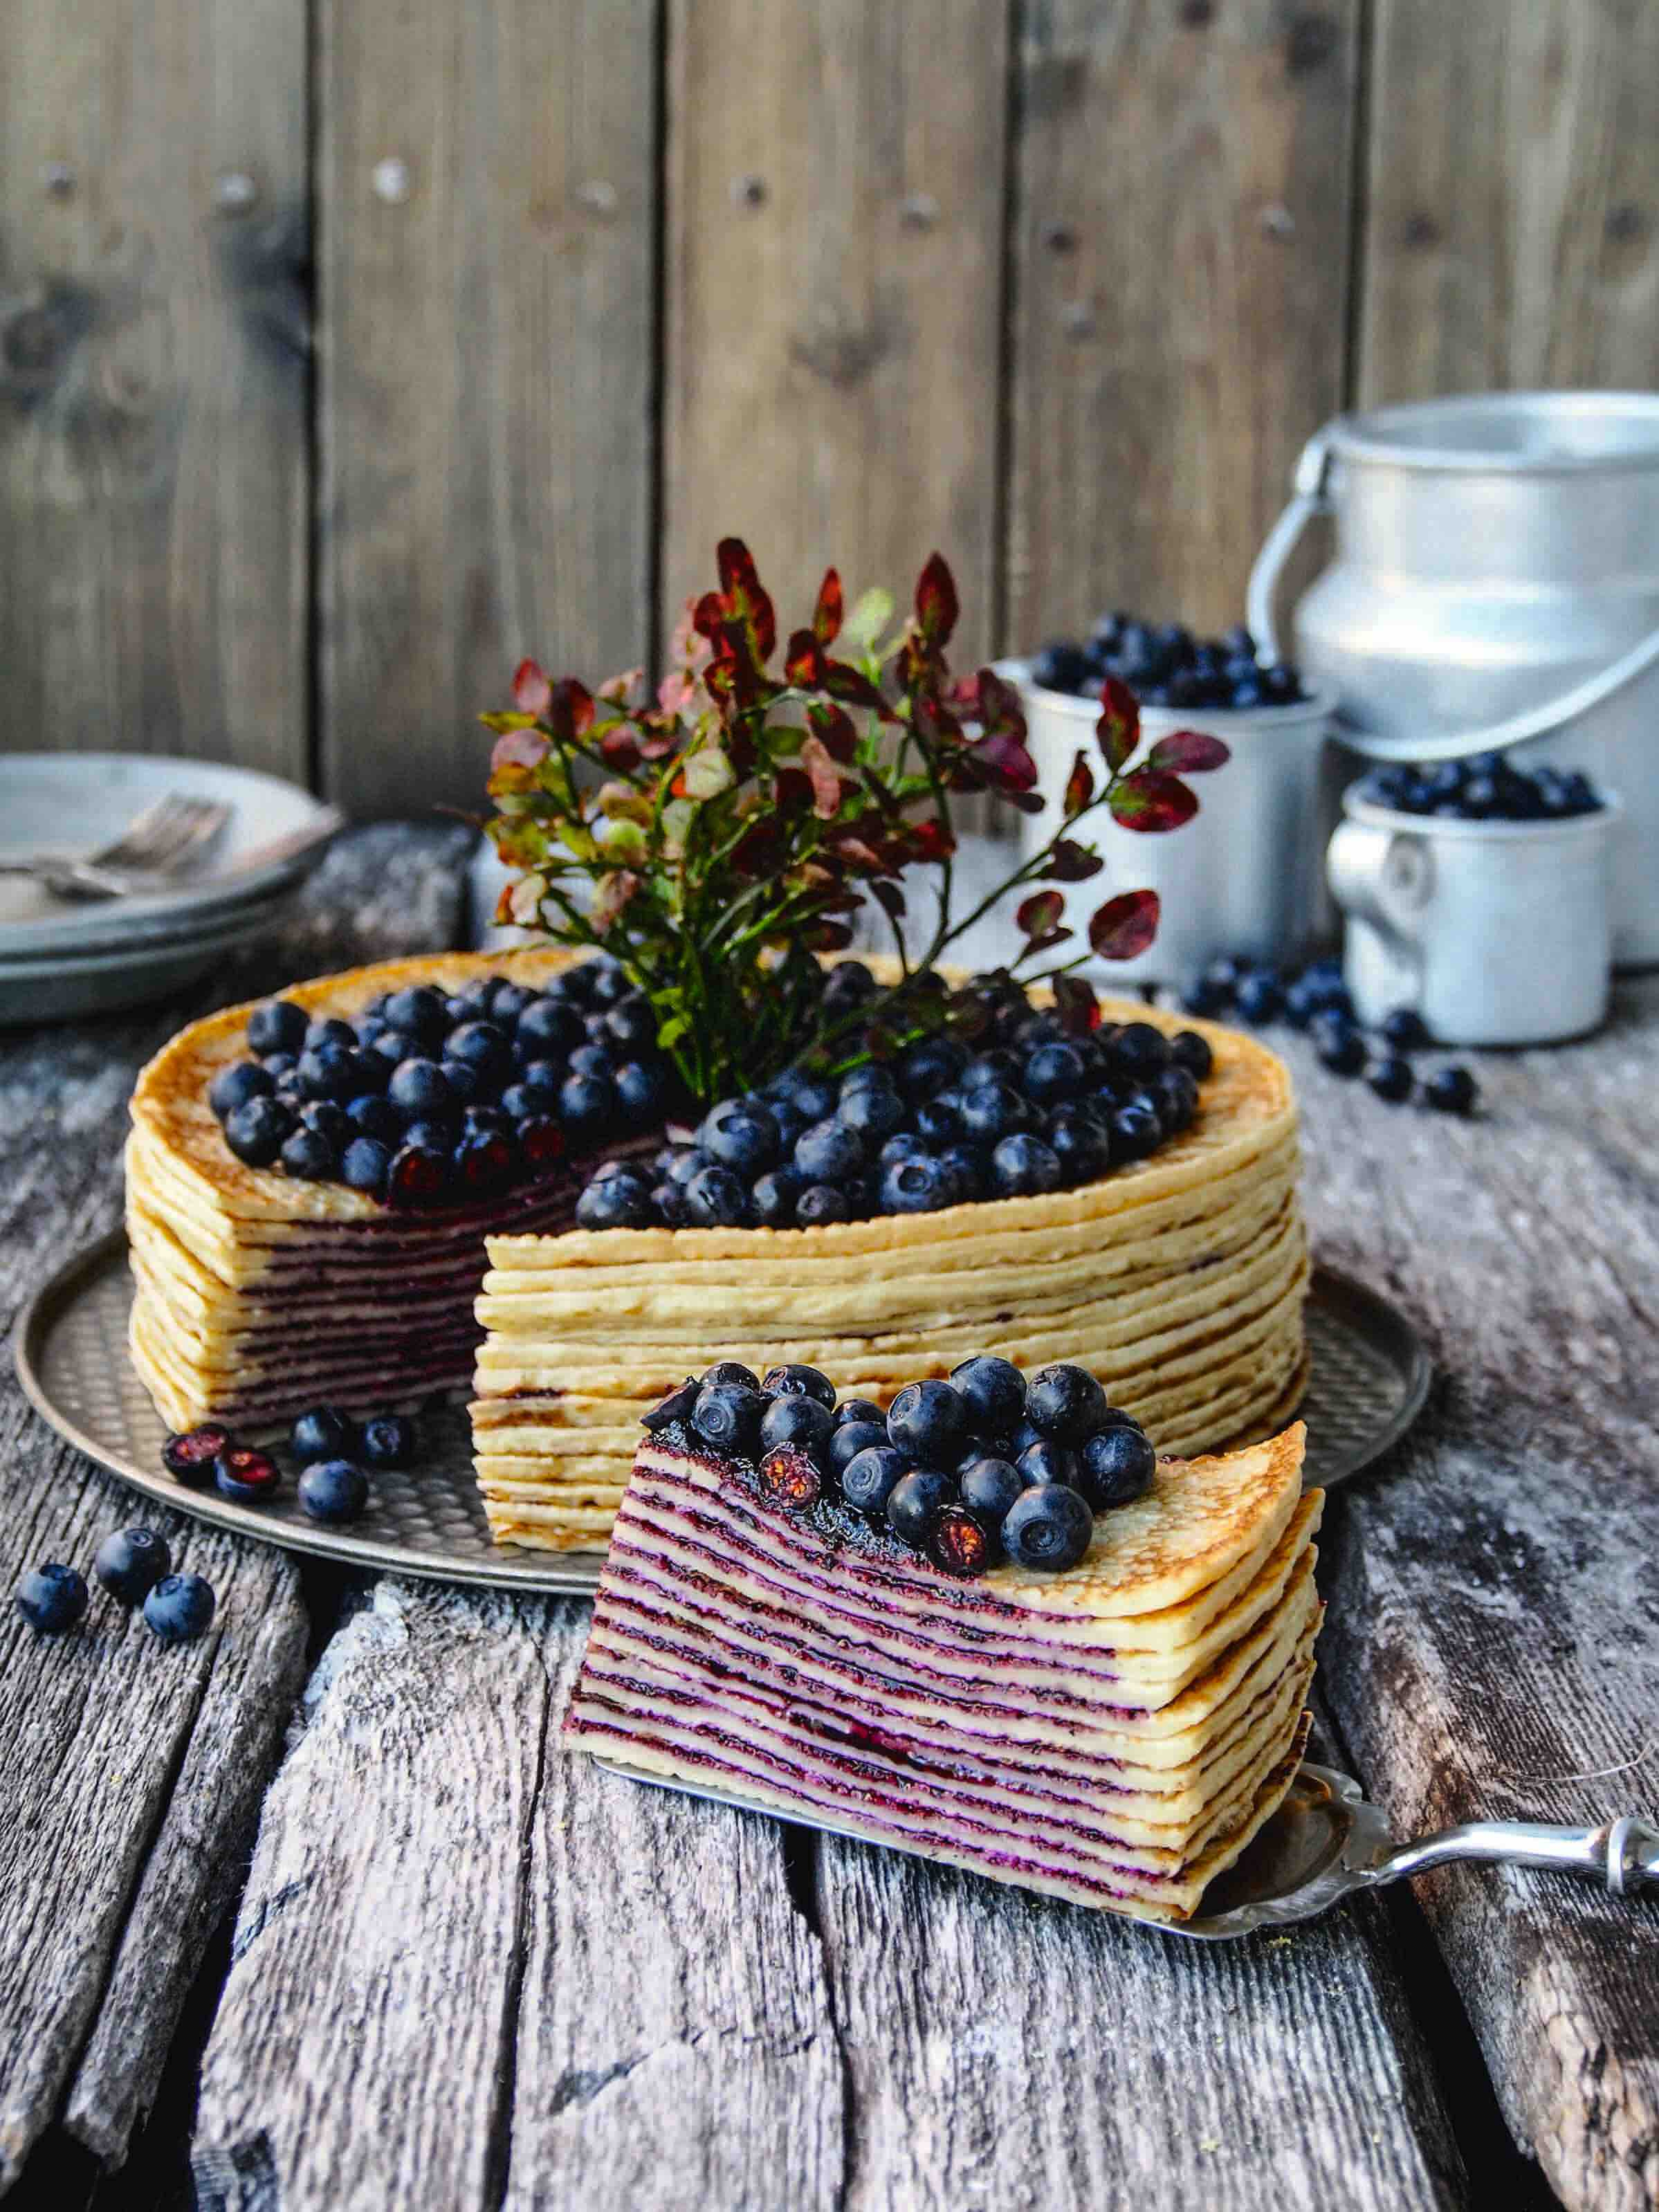 Crepe cake topped with blueberries.